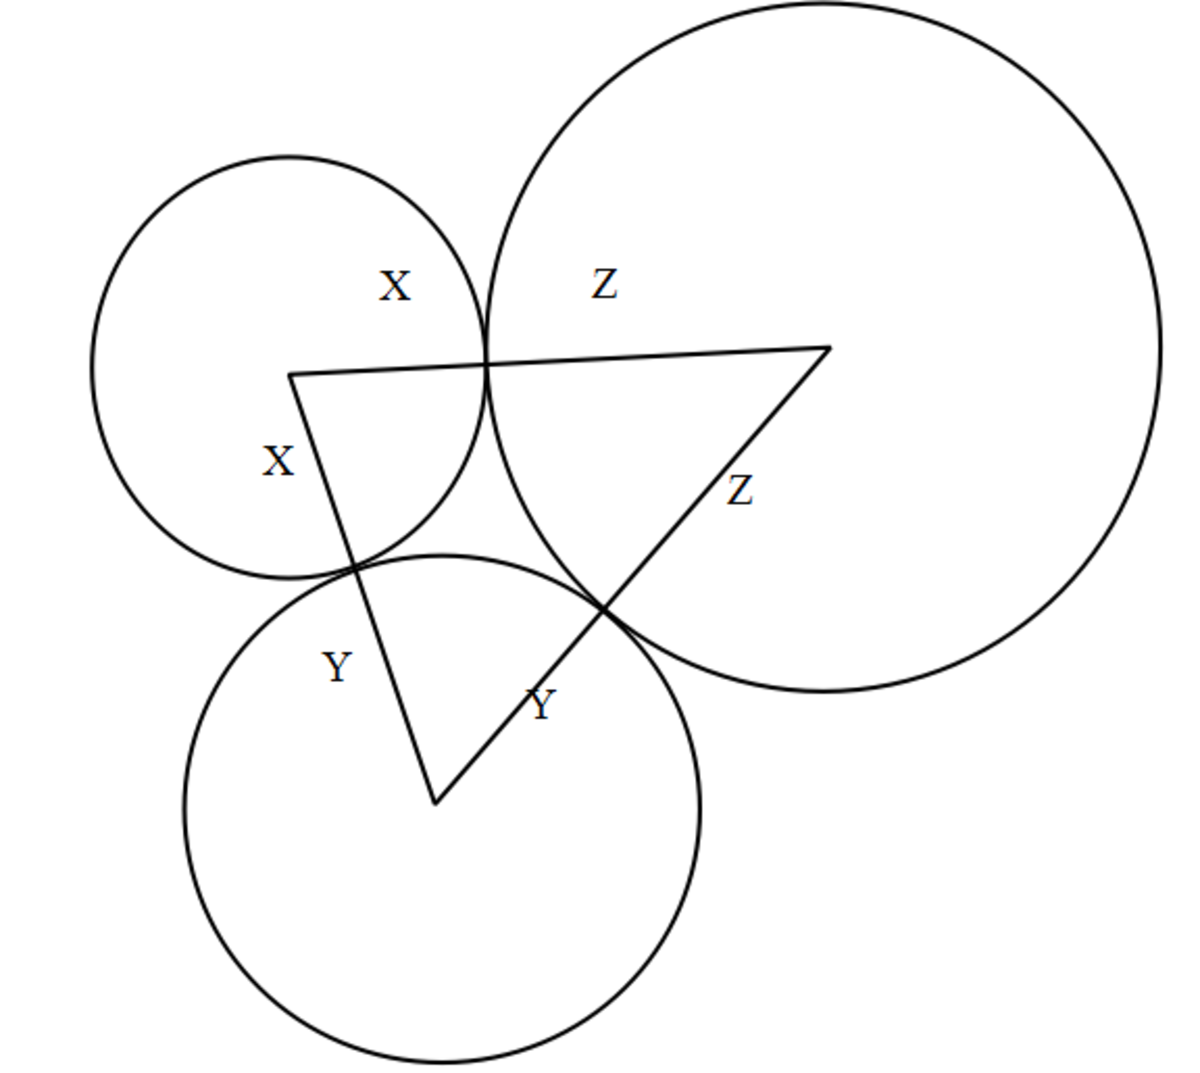 Calculator Techniques for Circles Tangent to Each Other